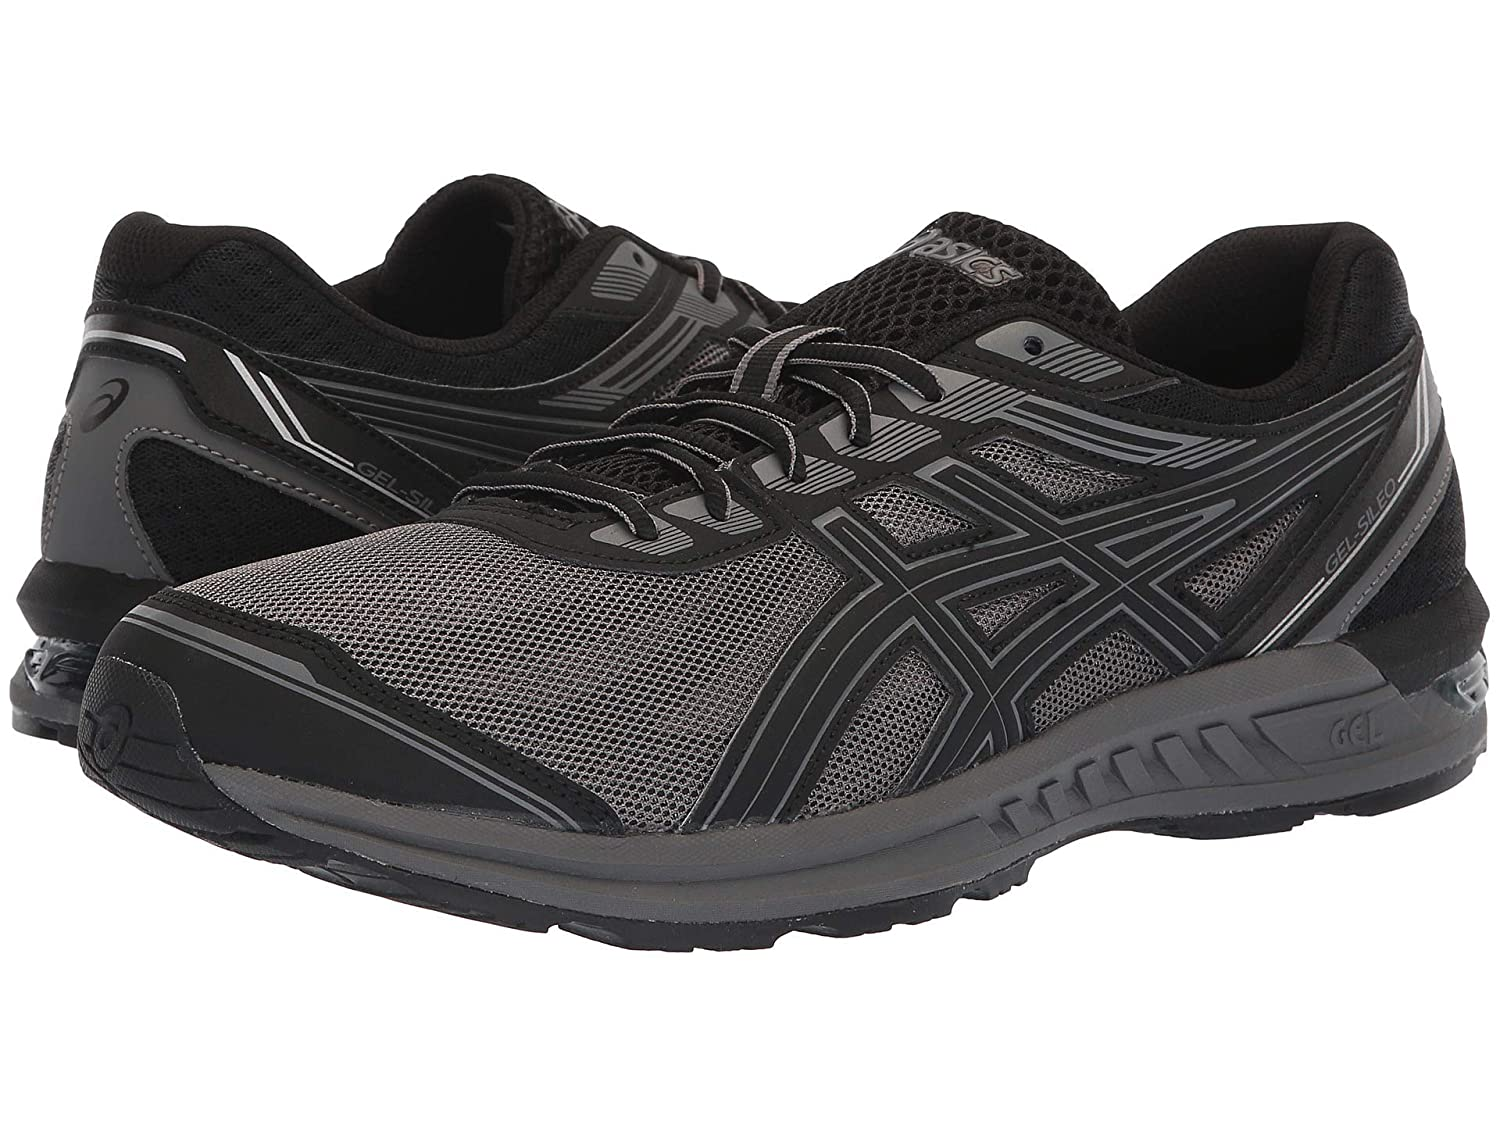 Best ASICS Gel Kids and Baby Price List in Philippines June 2019